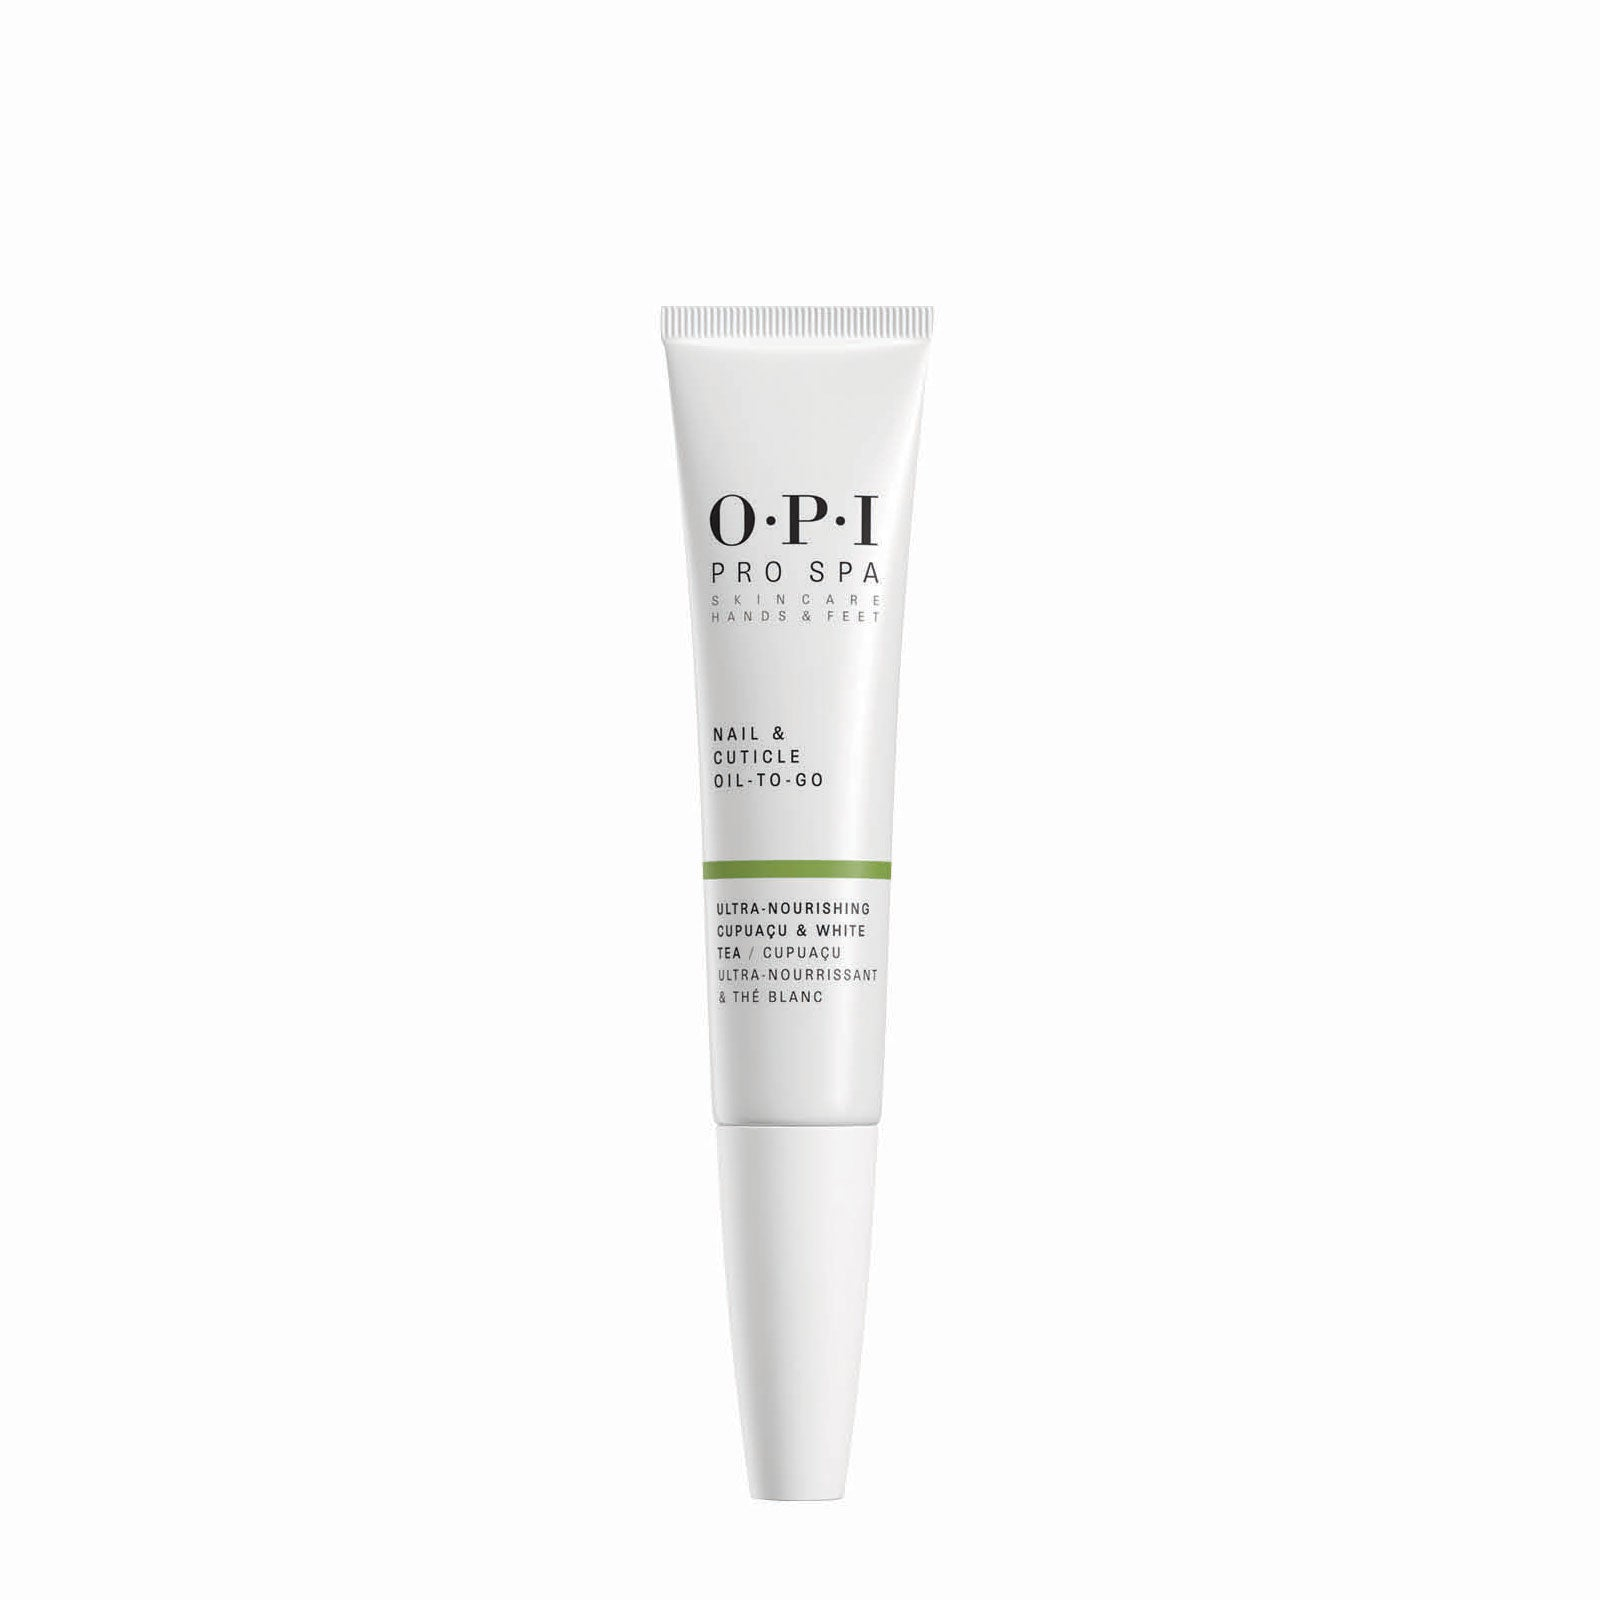 OPI ProSpa Nail & Cuticle Oil To-Go 7.5ml